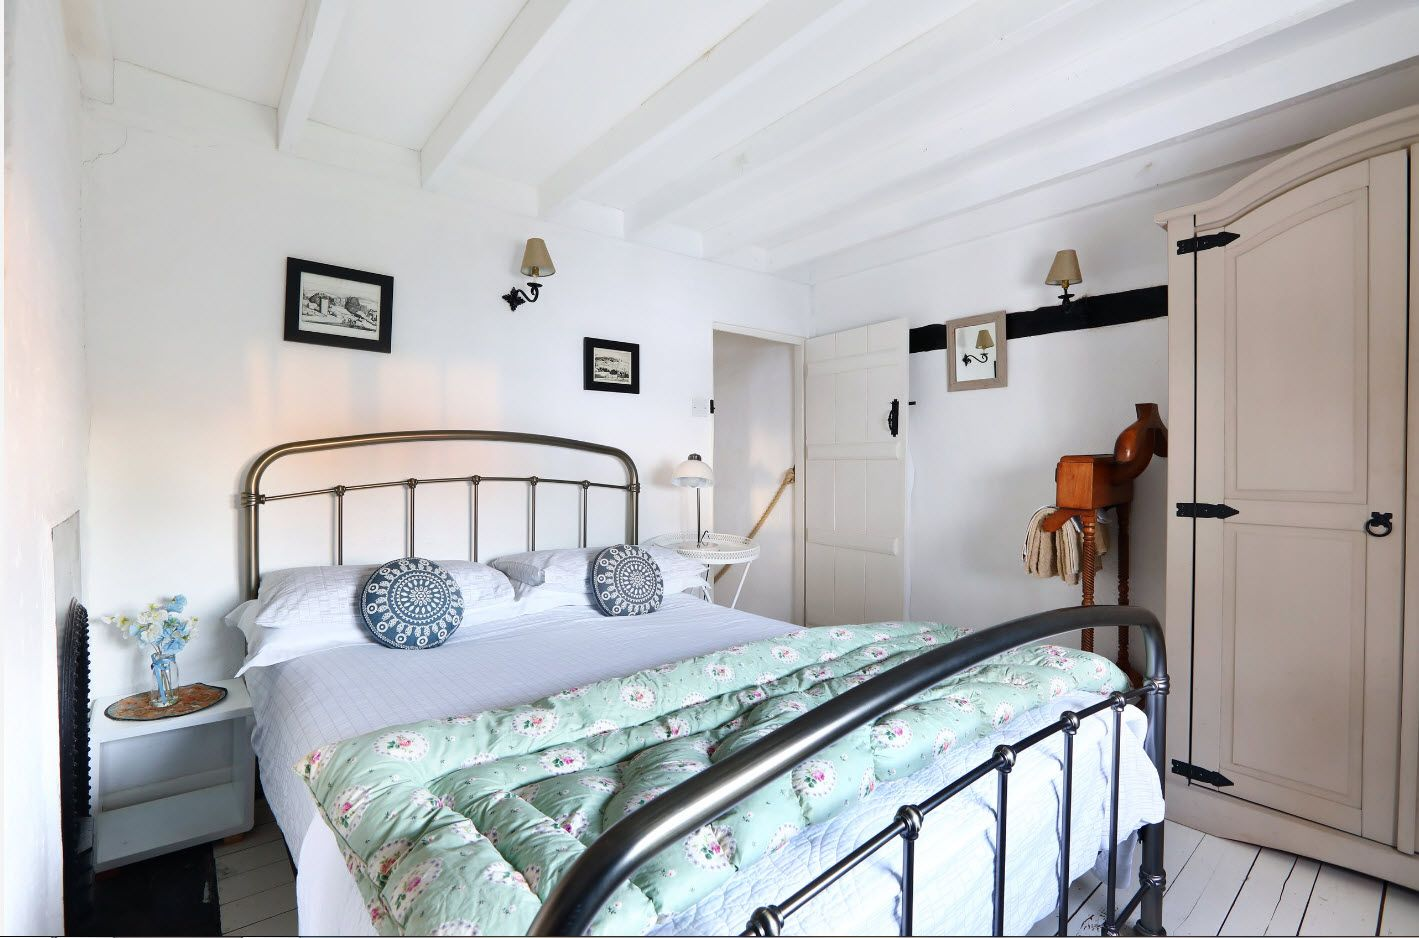 White ceiling beams and metal sides of th bed